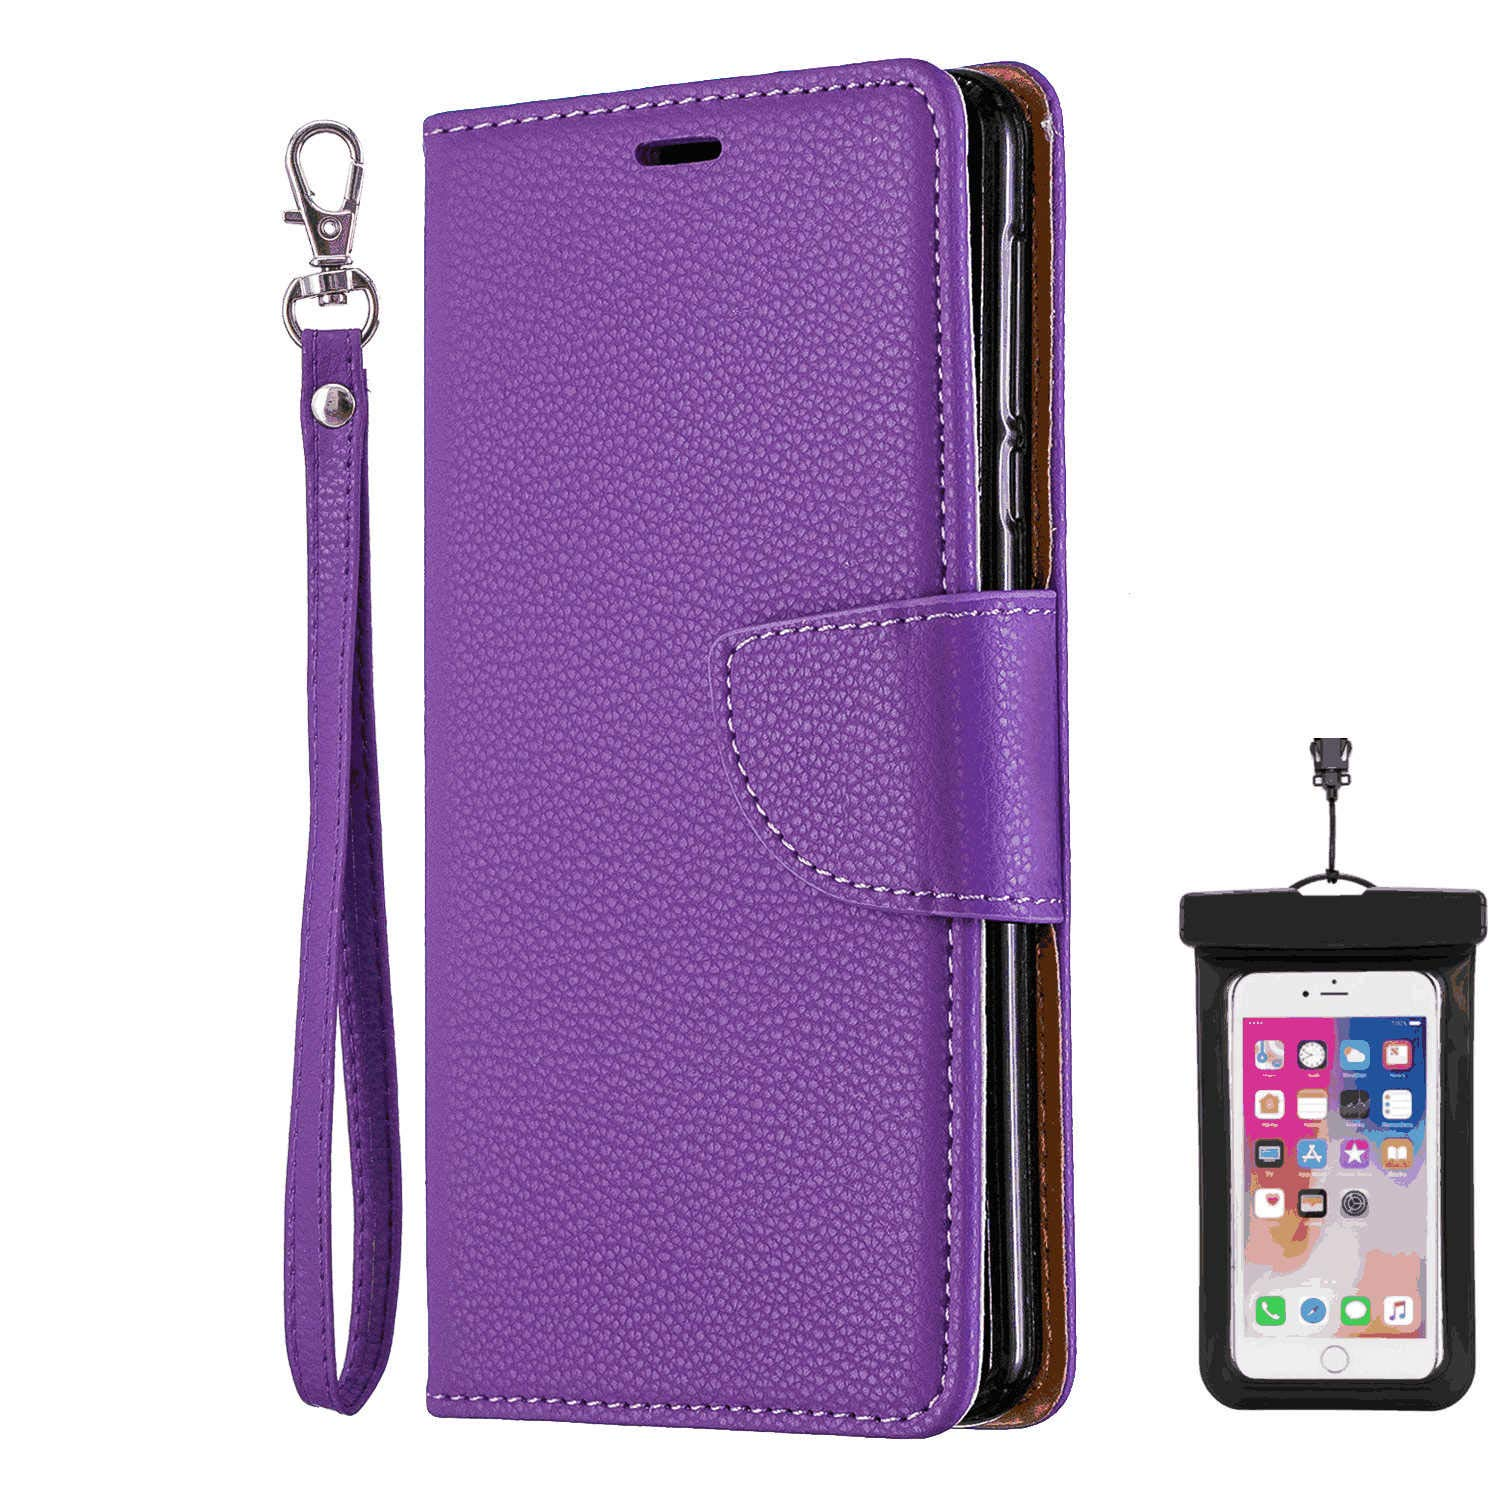 Flip Cover fit for Samsung Galaxy S10 Business Gifts with Waterproof-case Bags Leather Case for Samsung Galaxy S10